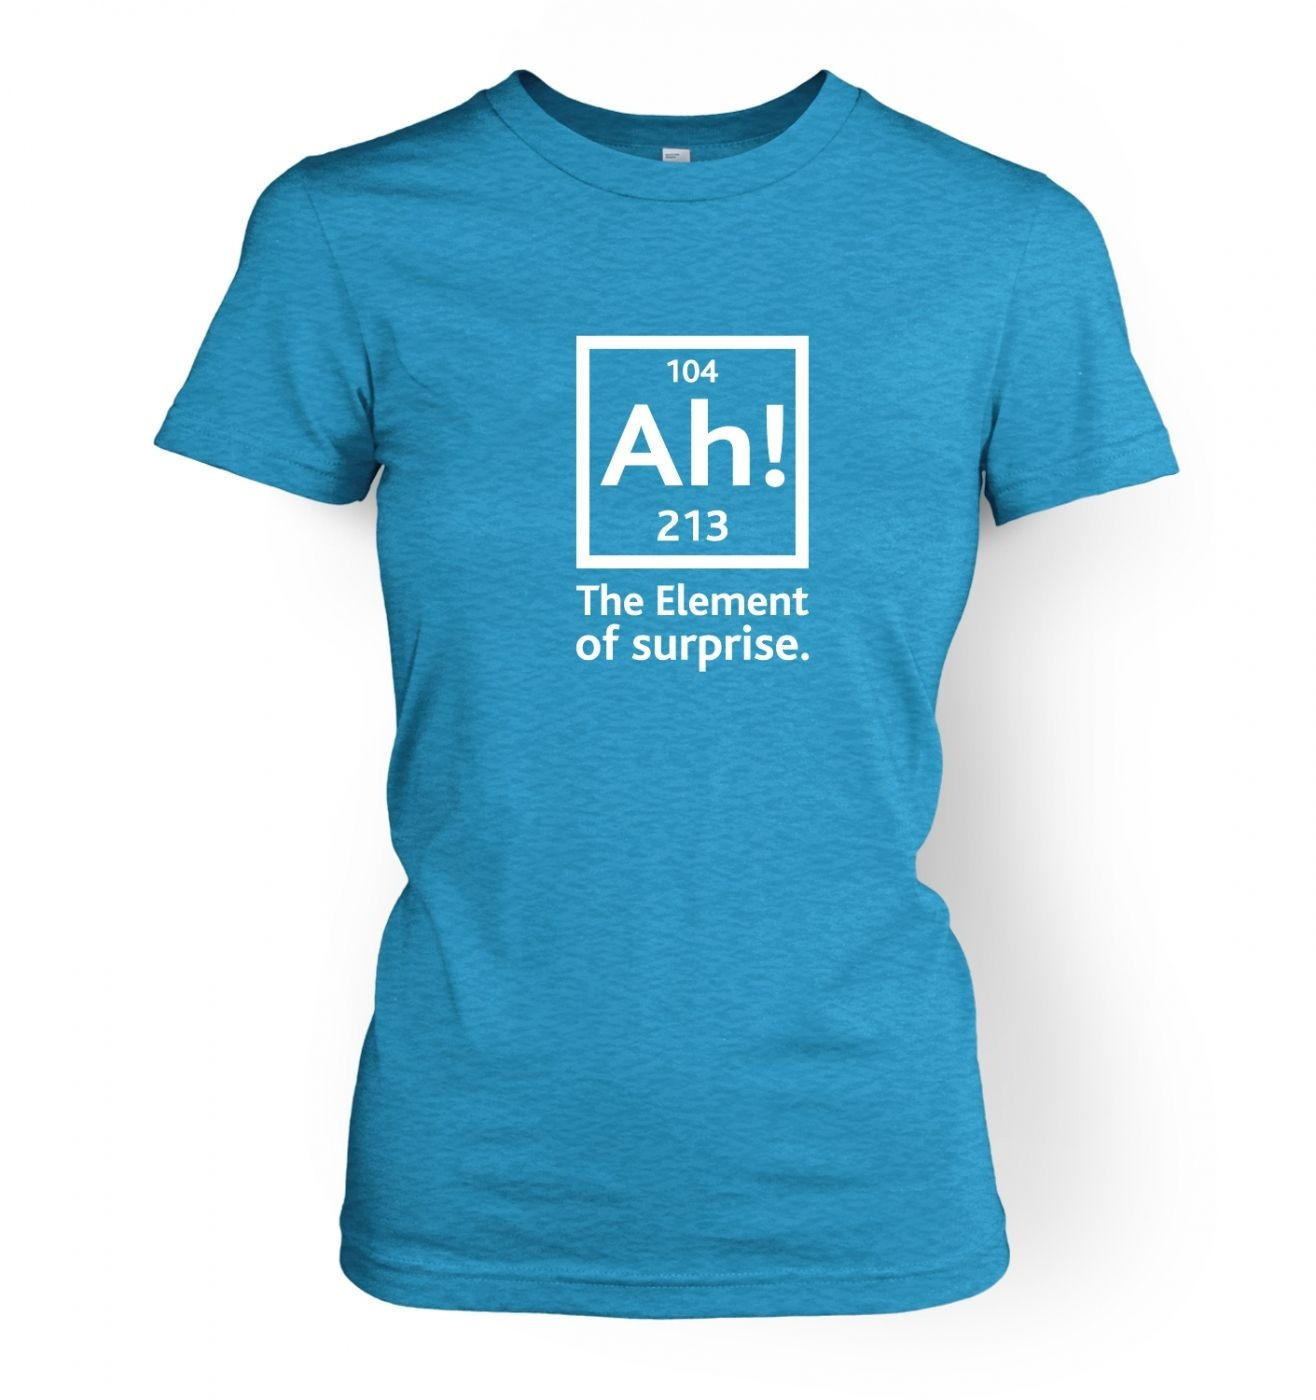 Ah! The Element Of Surprise women's fitted t-shirt